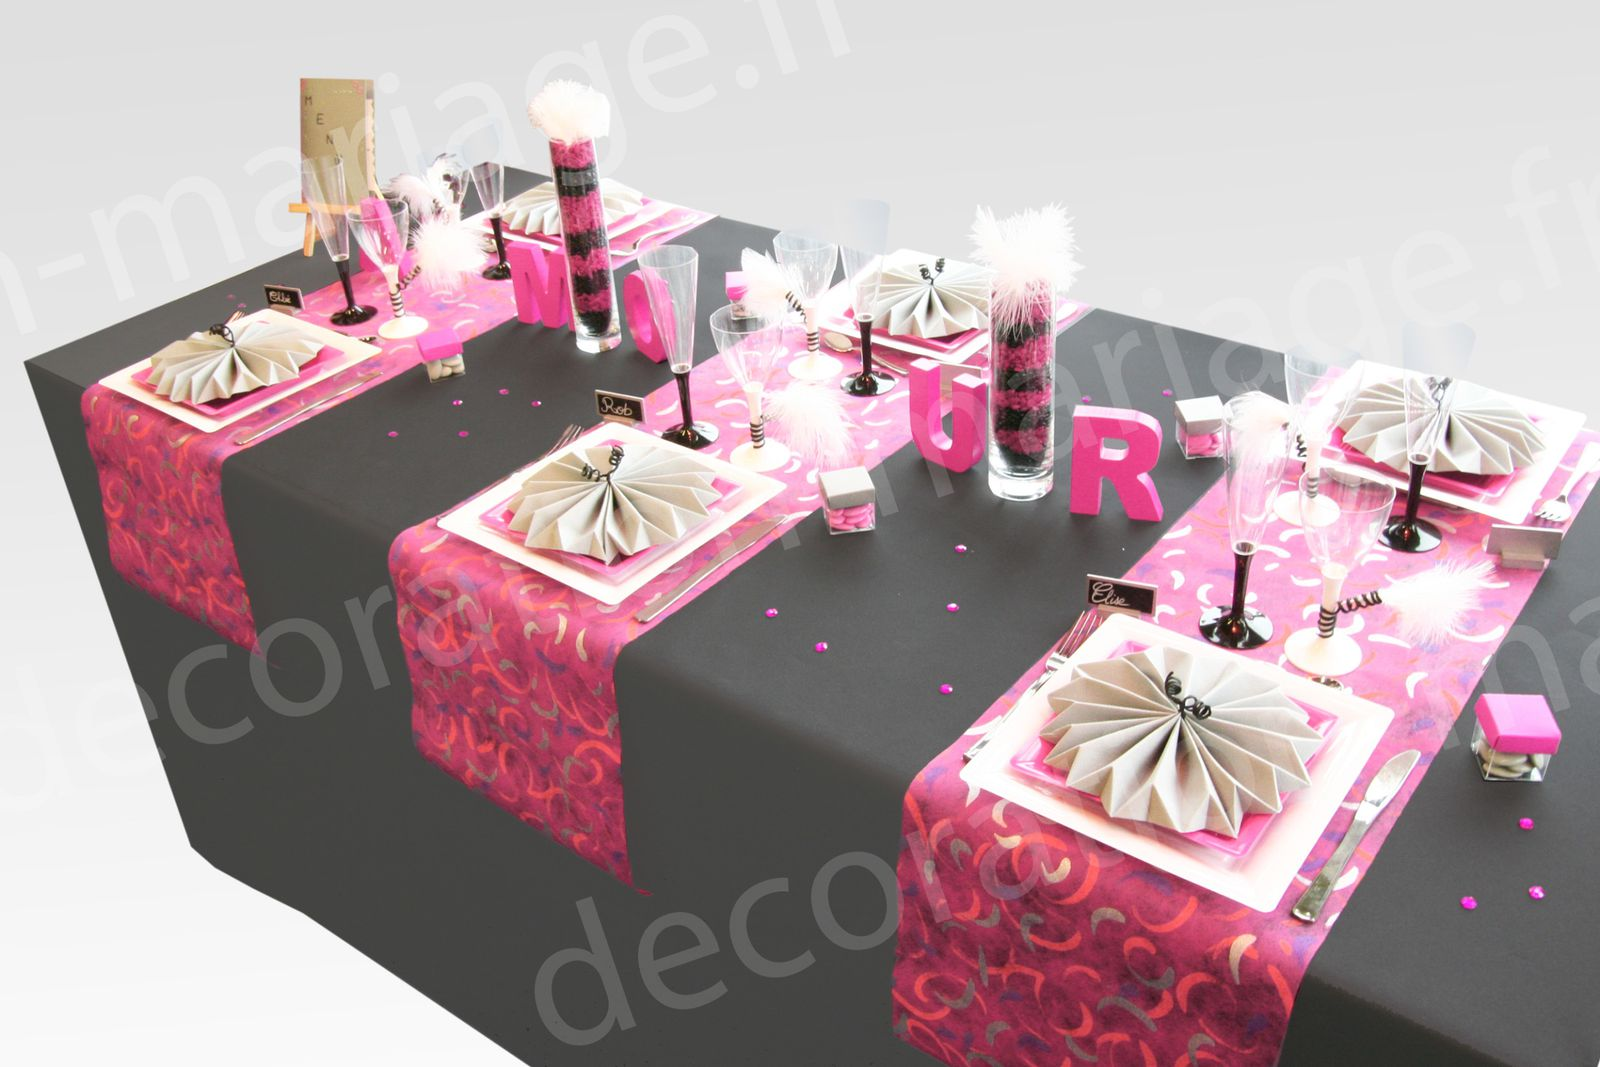 decoration de table mariage decoration mariage astuces conseils et bonne id es. Black Bedroom Furniture Sets. Home Design Ideas